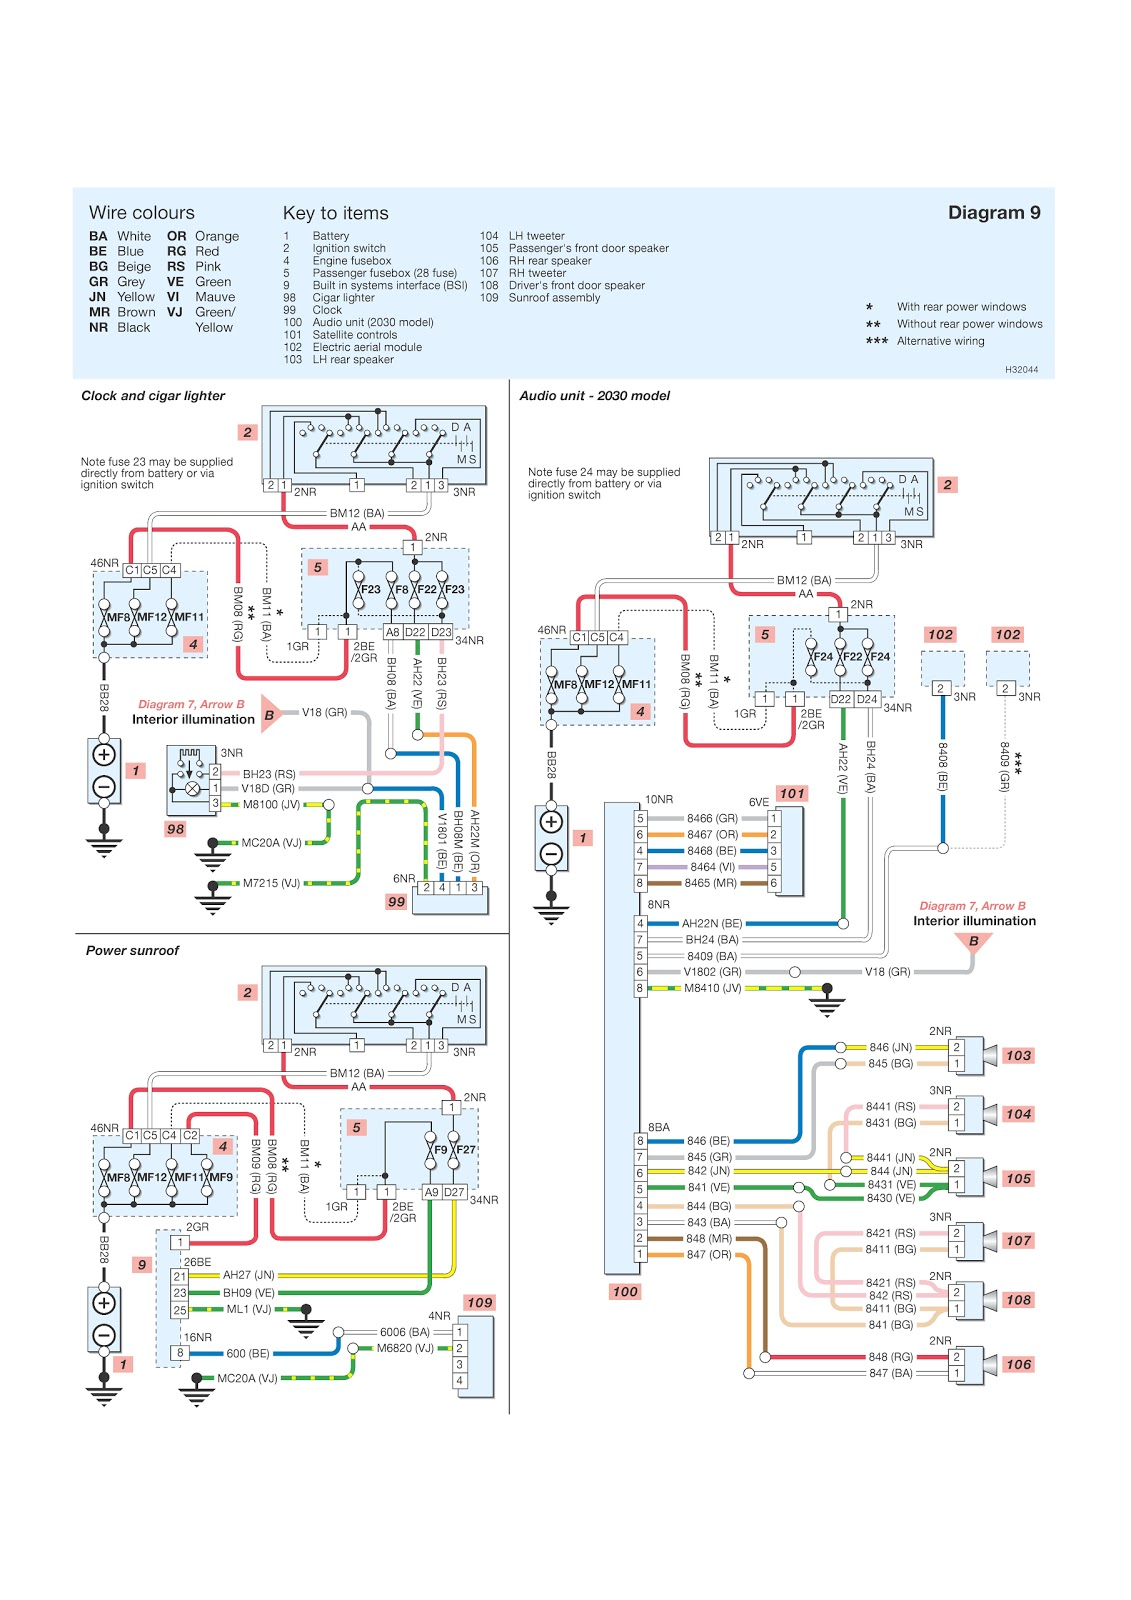 peugeot transmission diagrams peugeot 206 system wiring diagrams clock, cigar lighter ... peugeot wiring diagrams 206 #11